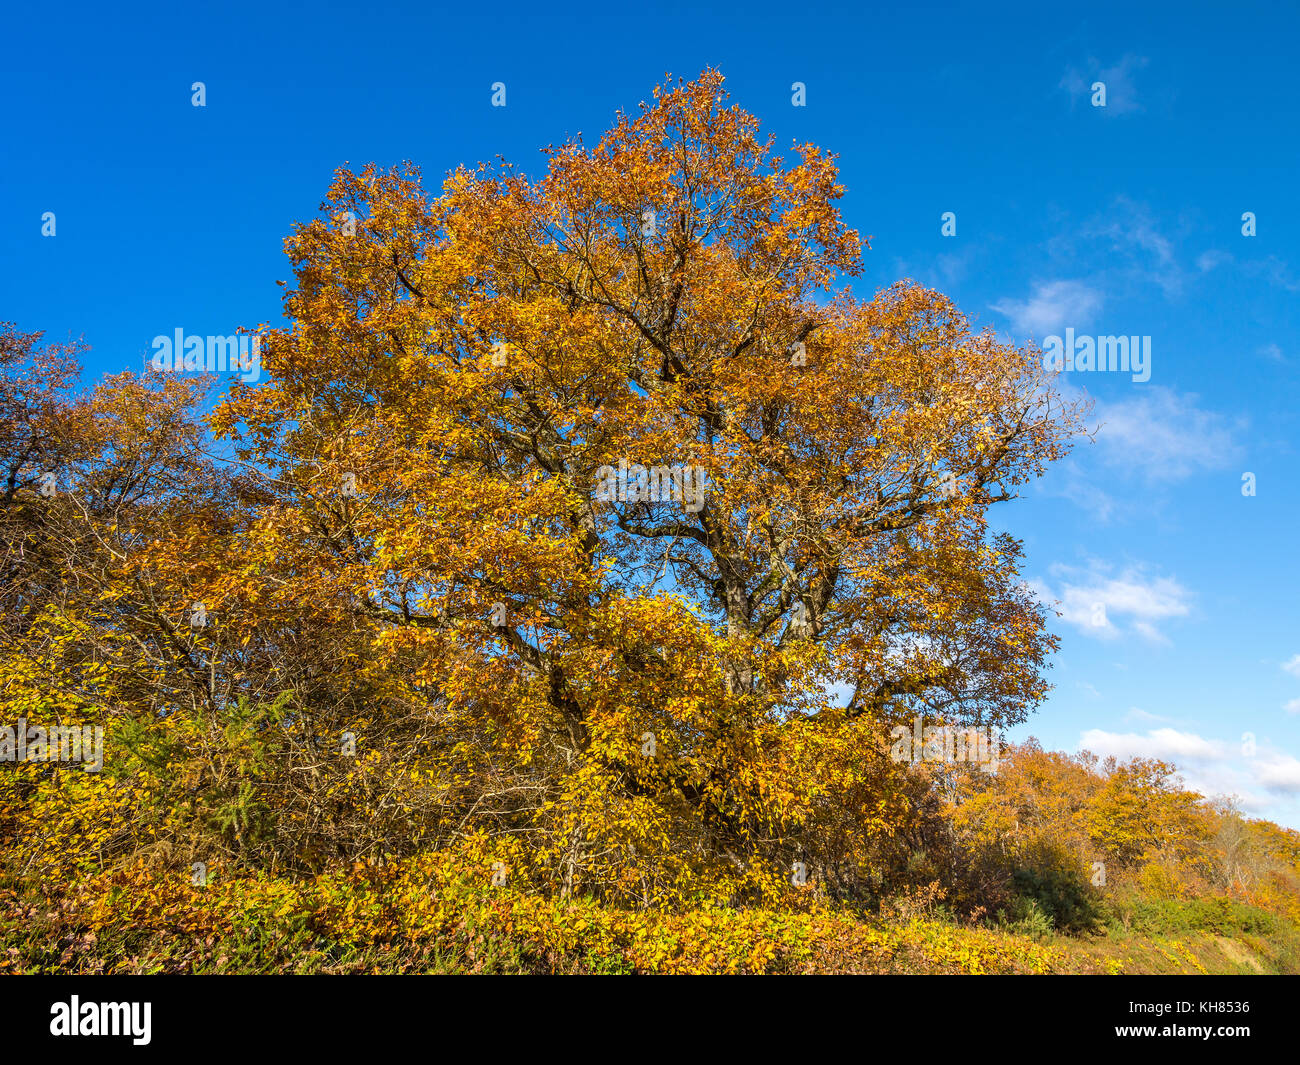 Autumn leaves on Oak Tree - France. - Stock Image